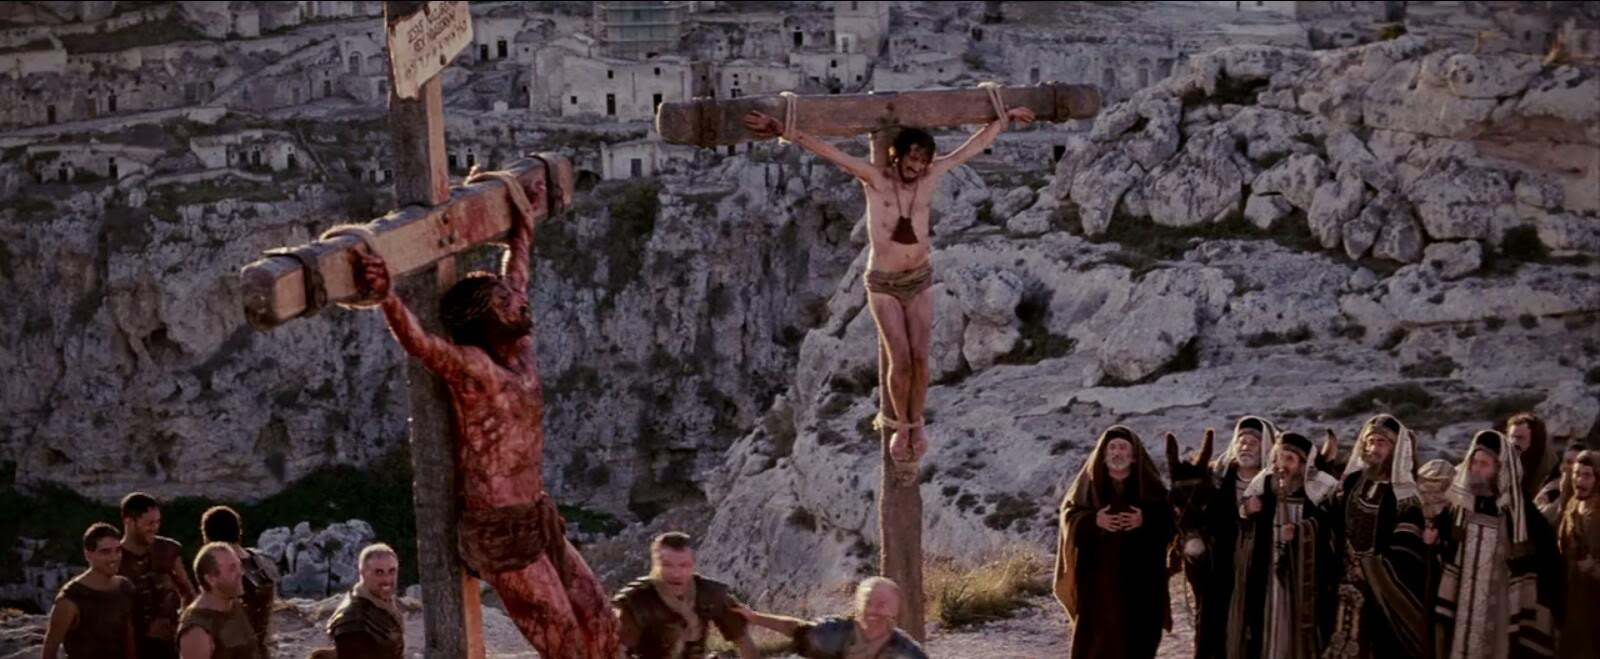 The Passion of the Christ Movie Review